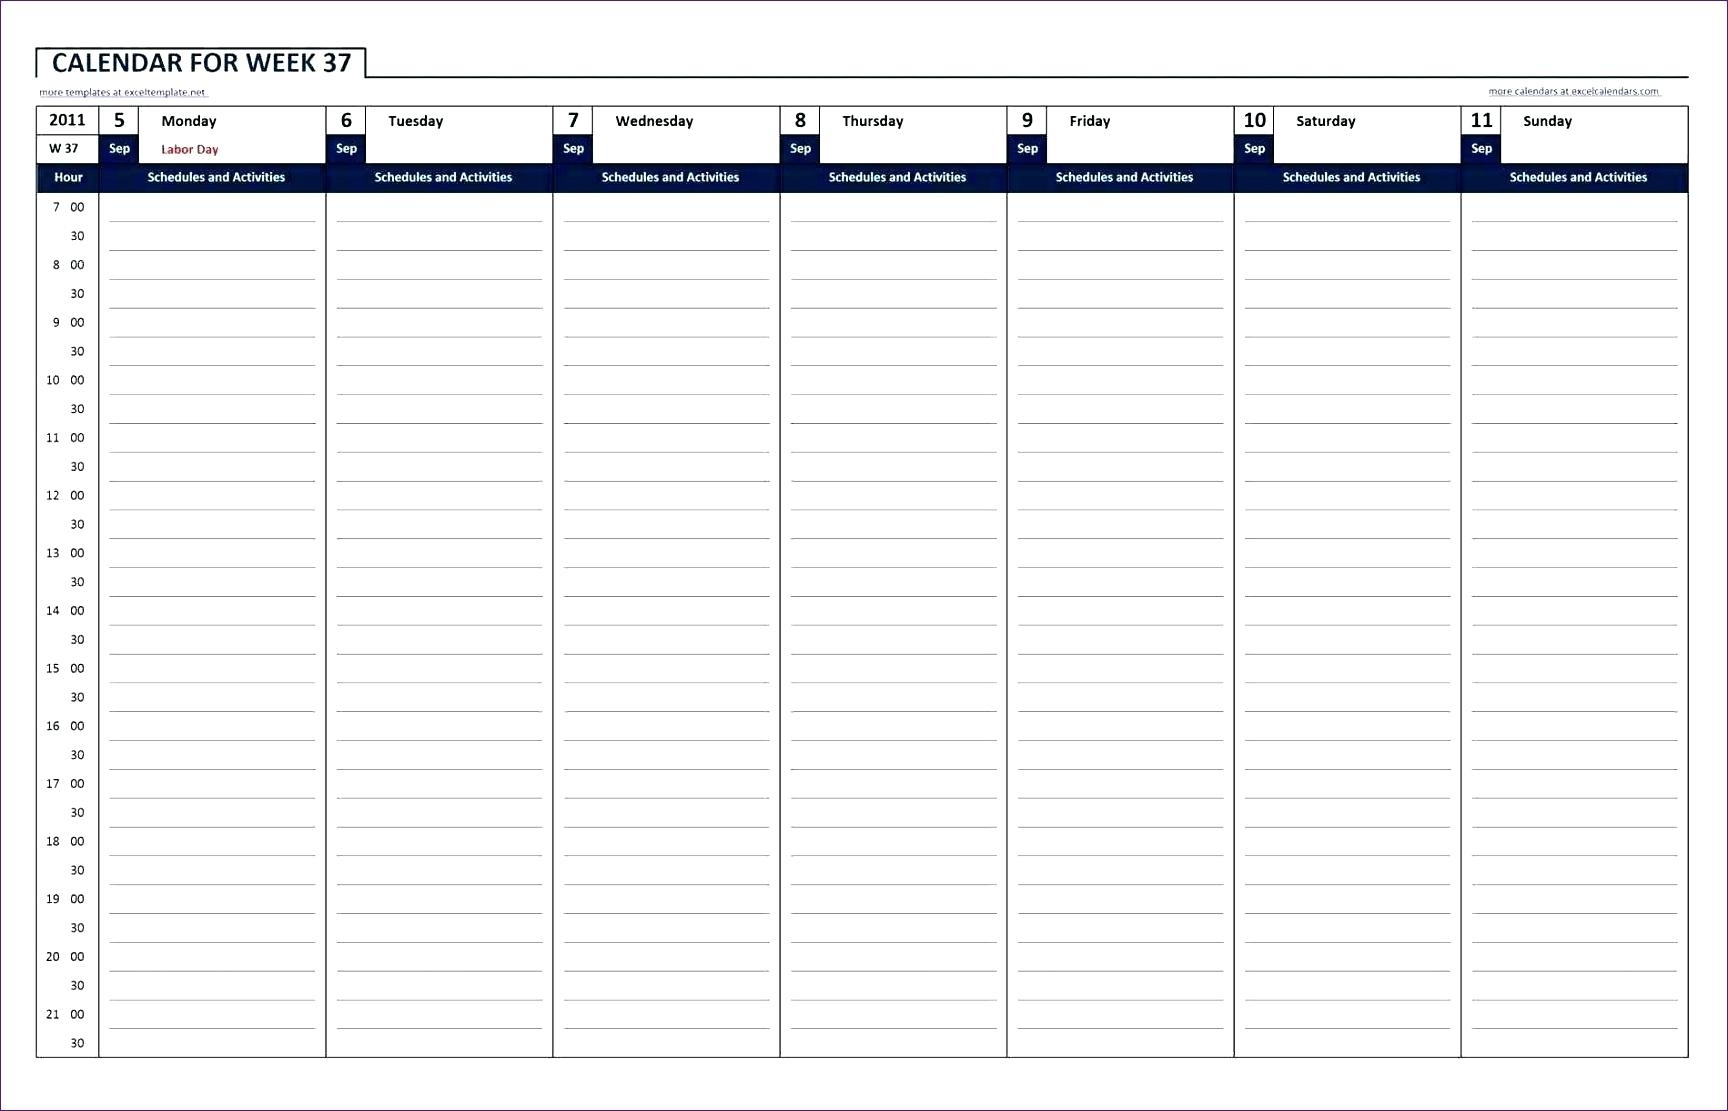 Free Weekly Hourly Schedule Template Hour Printable Calendar For pertaining to Weekly Calendar By Hour Printable